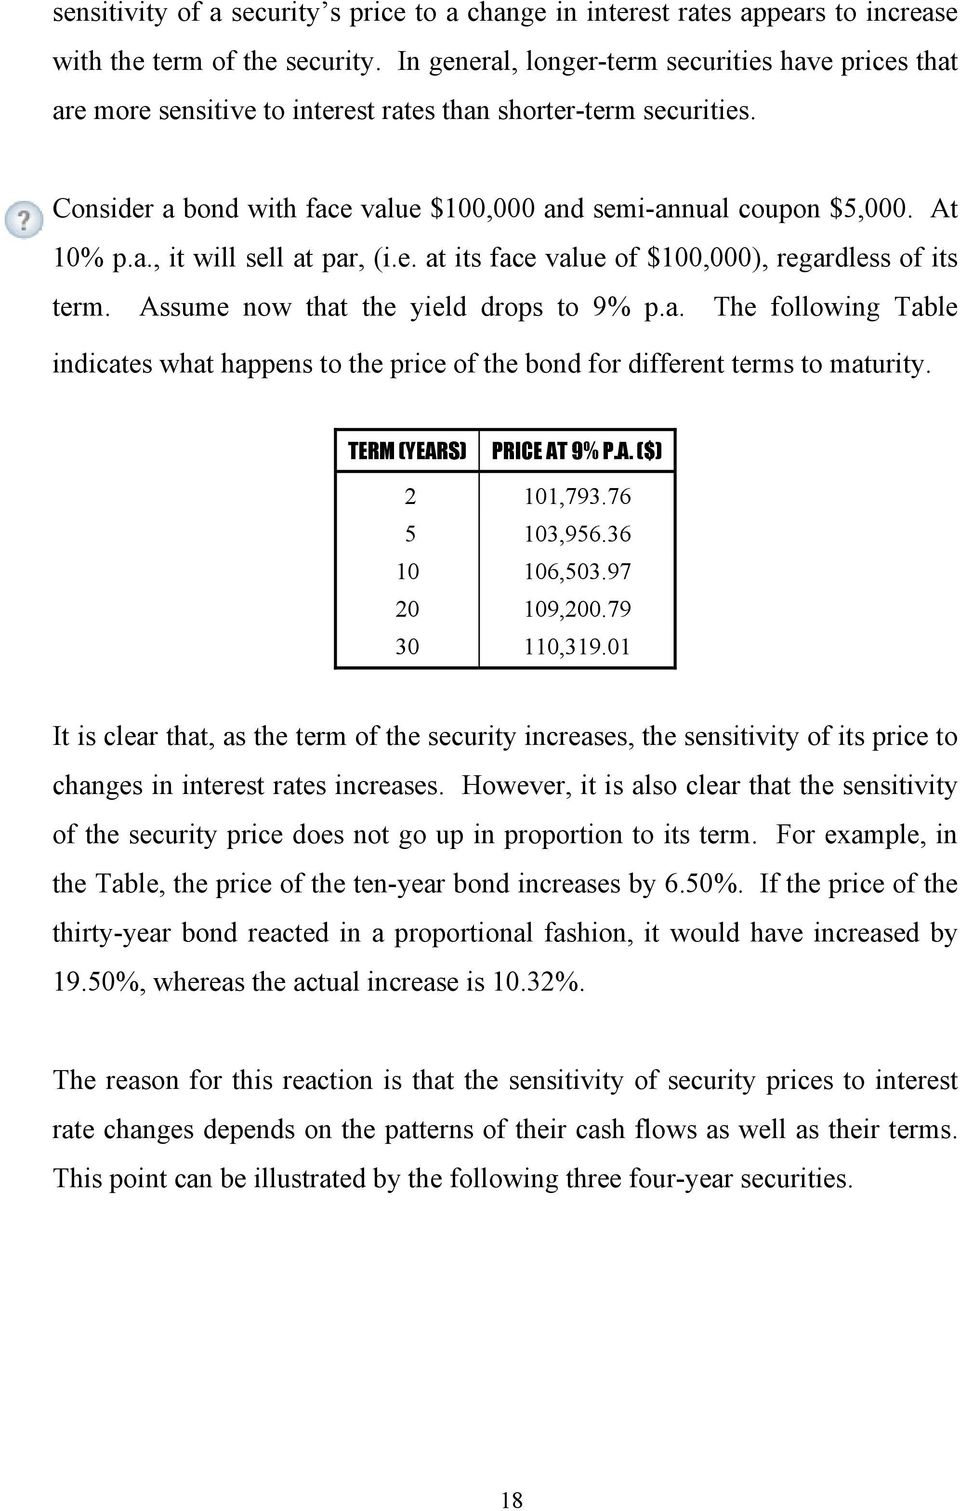 a., it will sell at par, (i.e. at its face value of $100,000), regardless of its term. Assume now that the yield drops to 9% p.a. The following Table indicates what happens to the price of the bond for different terms to maturity.